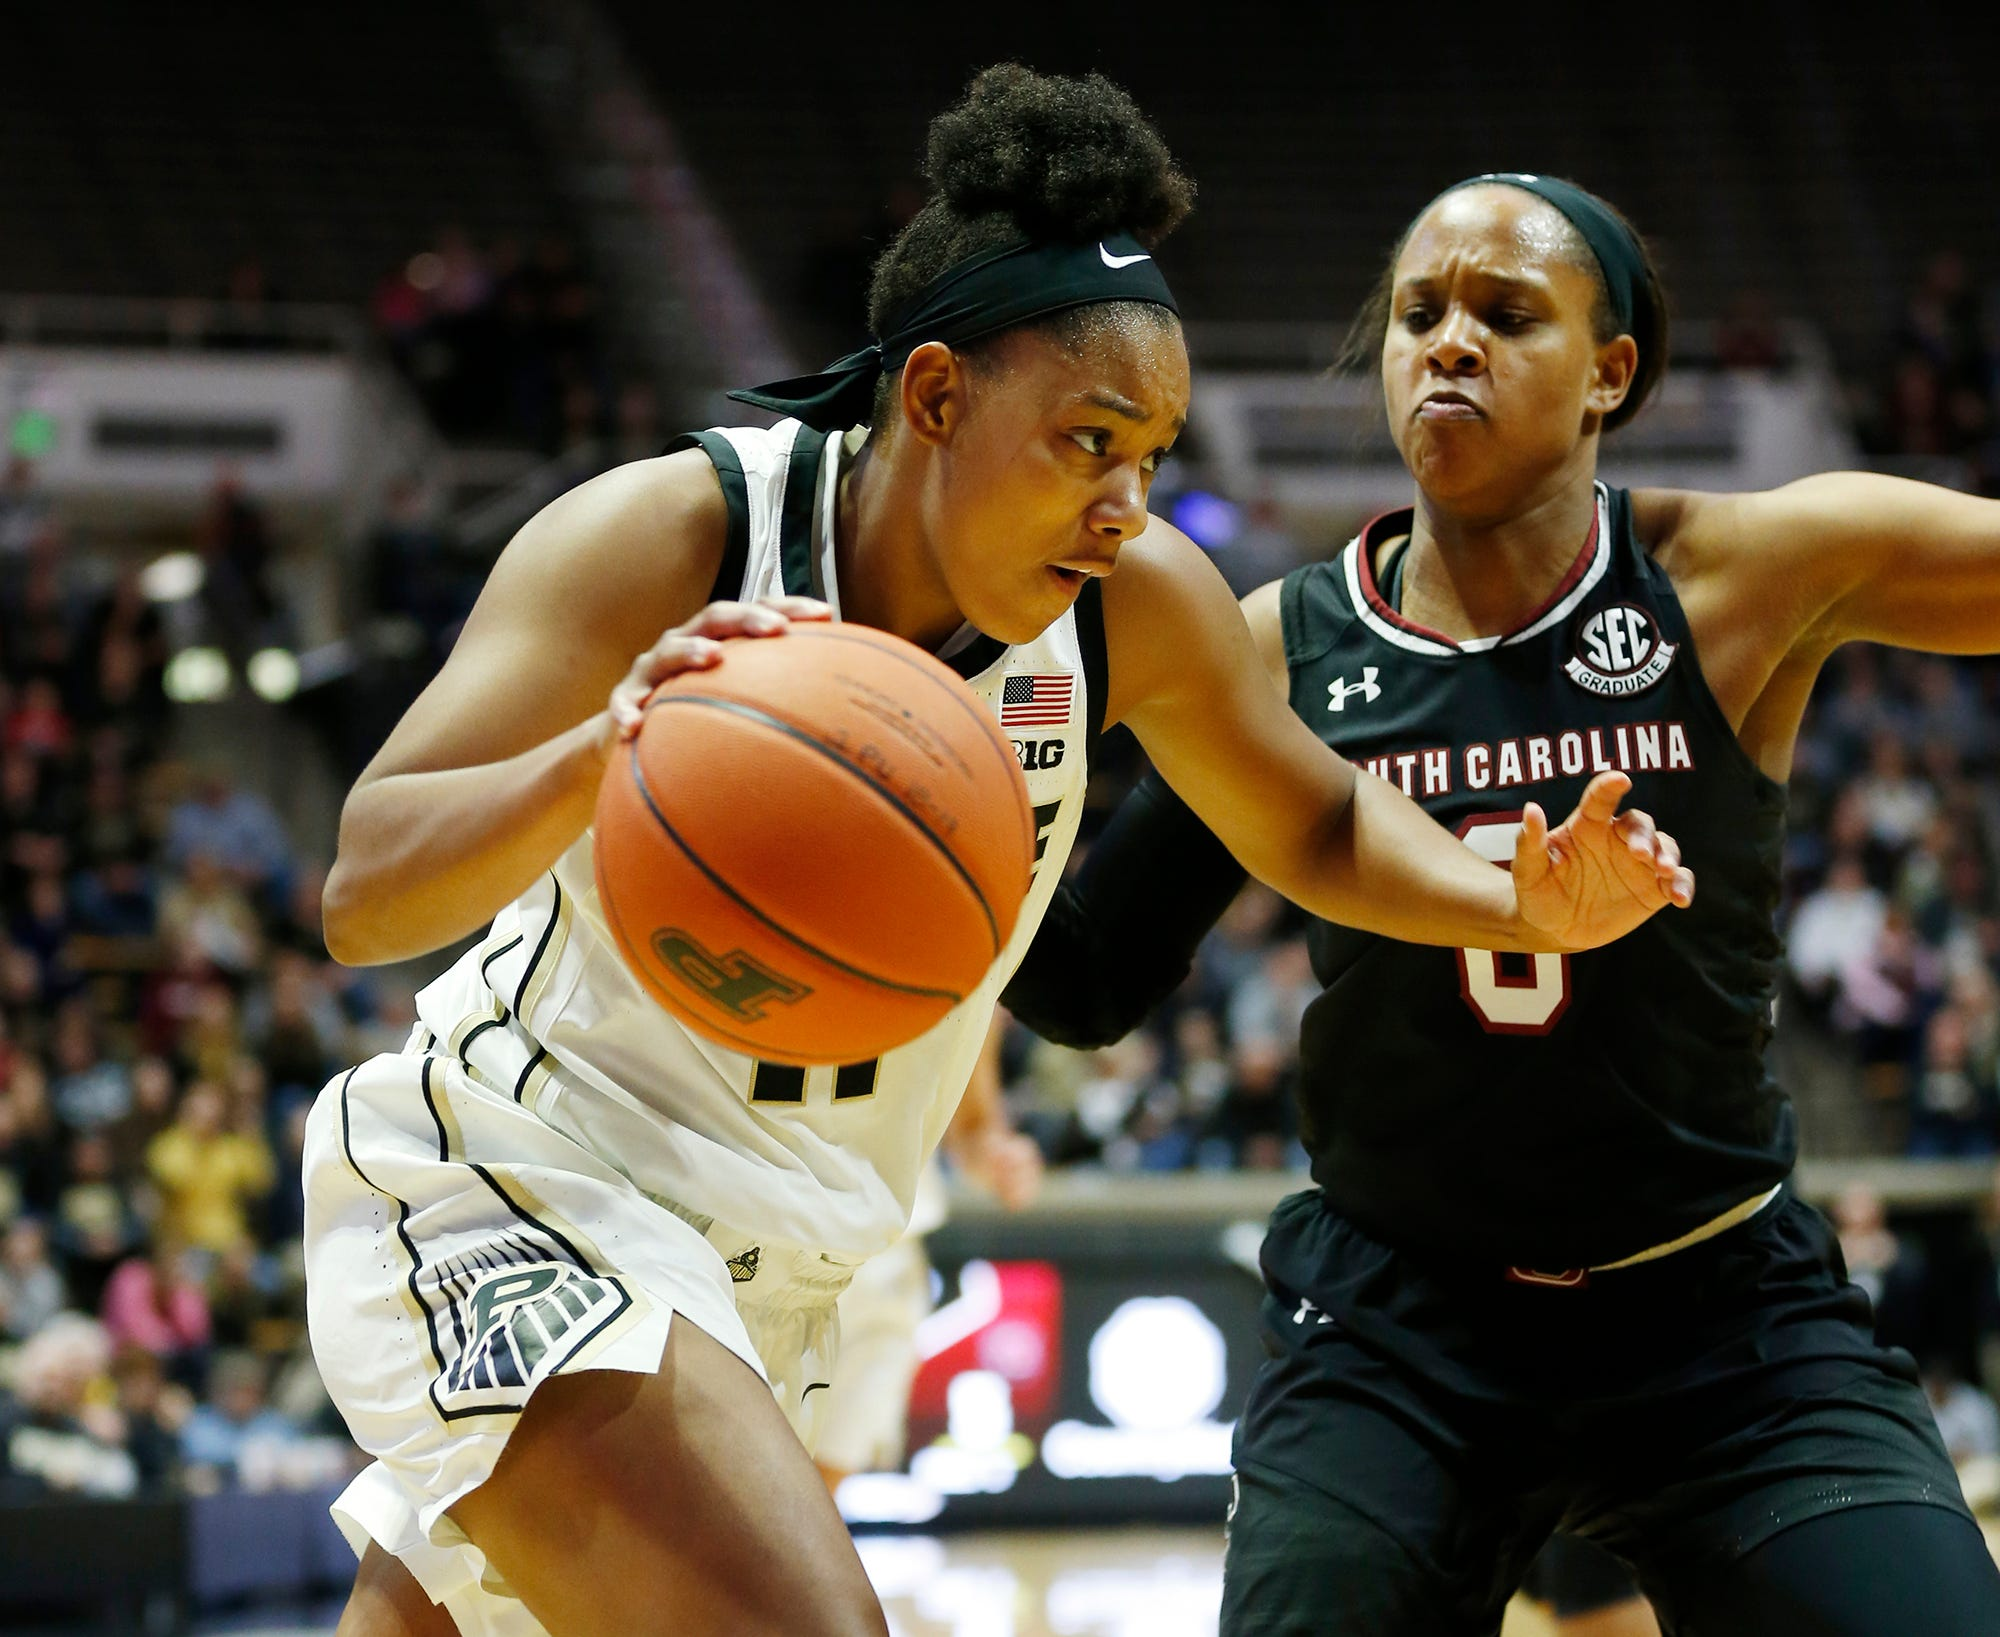 Dominique Oden Purdue with a drive along the baseline against Nelly Perry of South Carolina Sunday, December 16, 2018, at Mackey Arena. Purdue lost a heartbreaker to South Carolina 82-73 2OT.